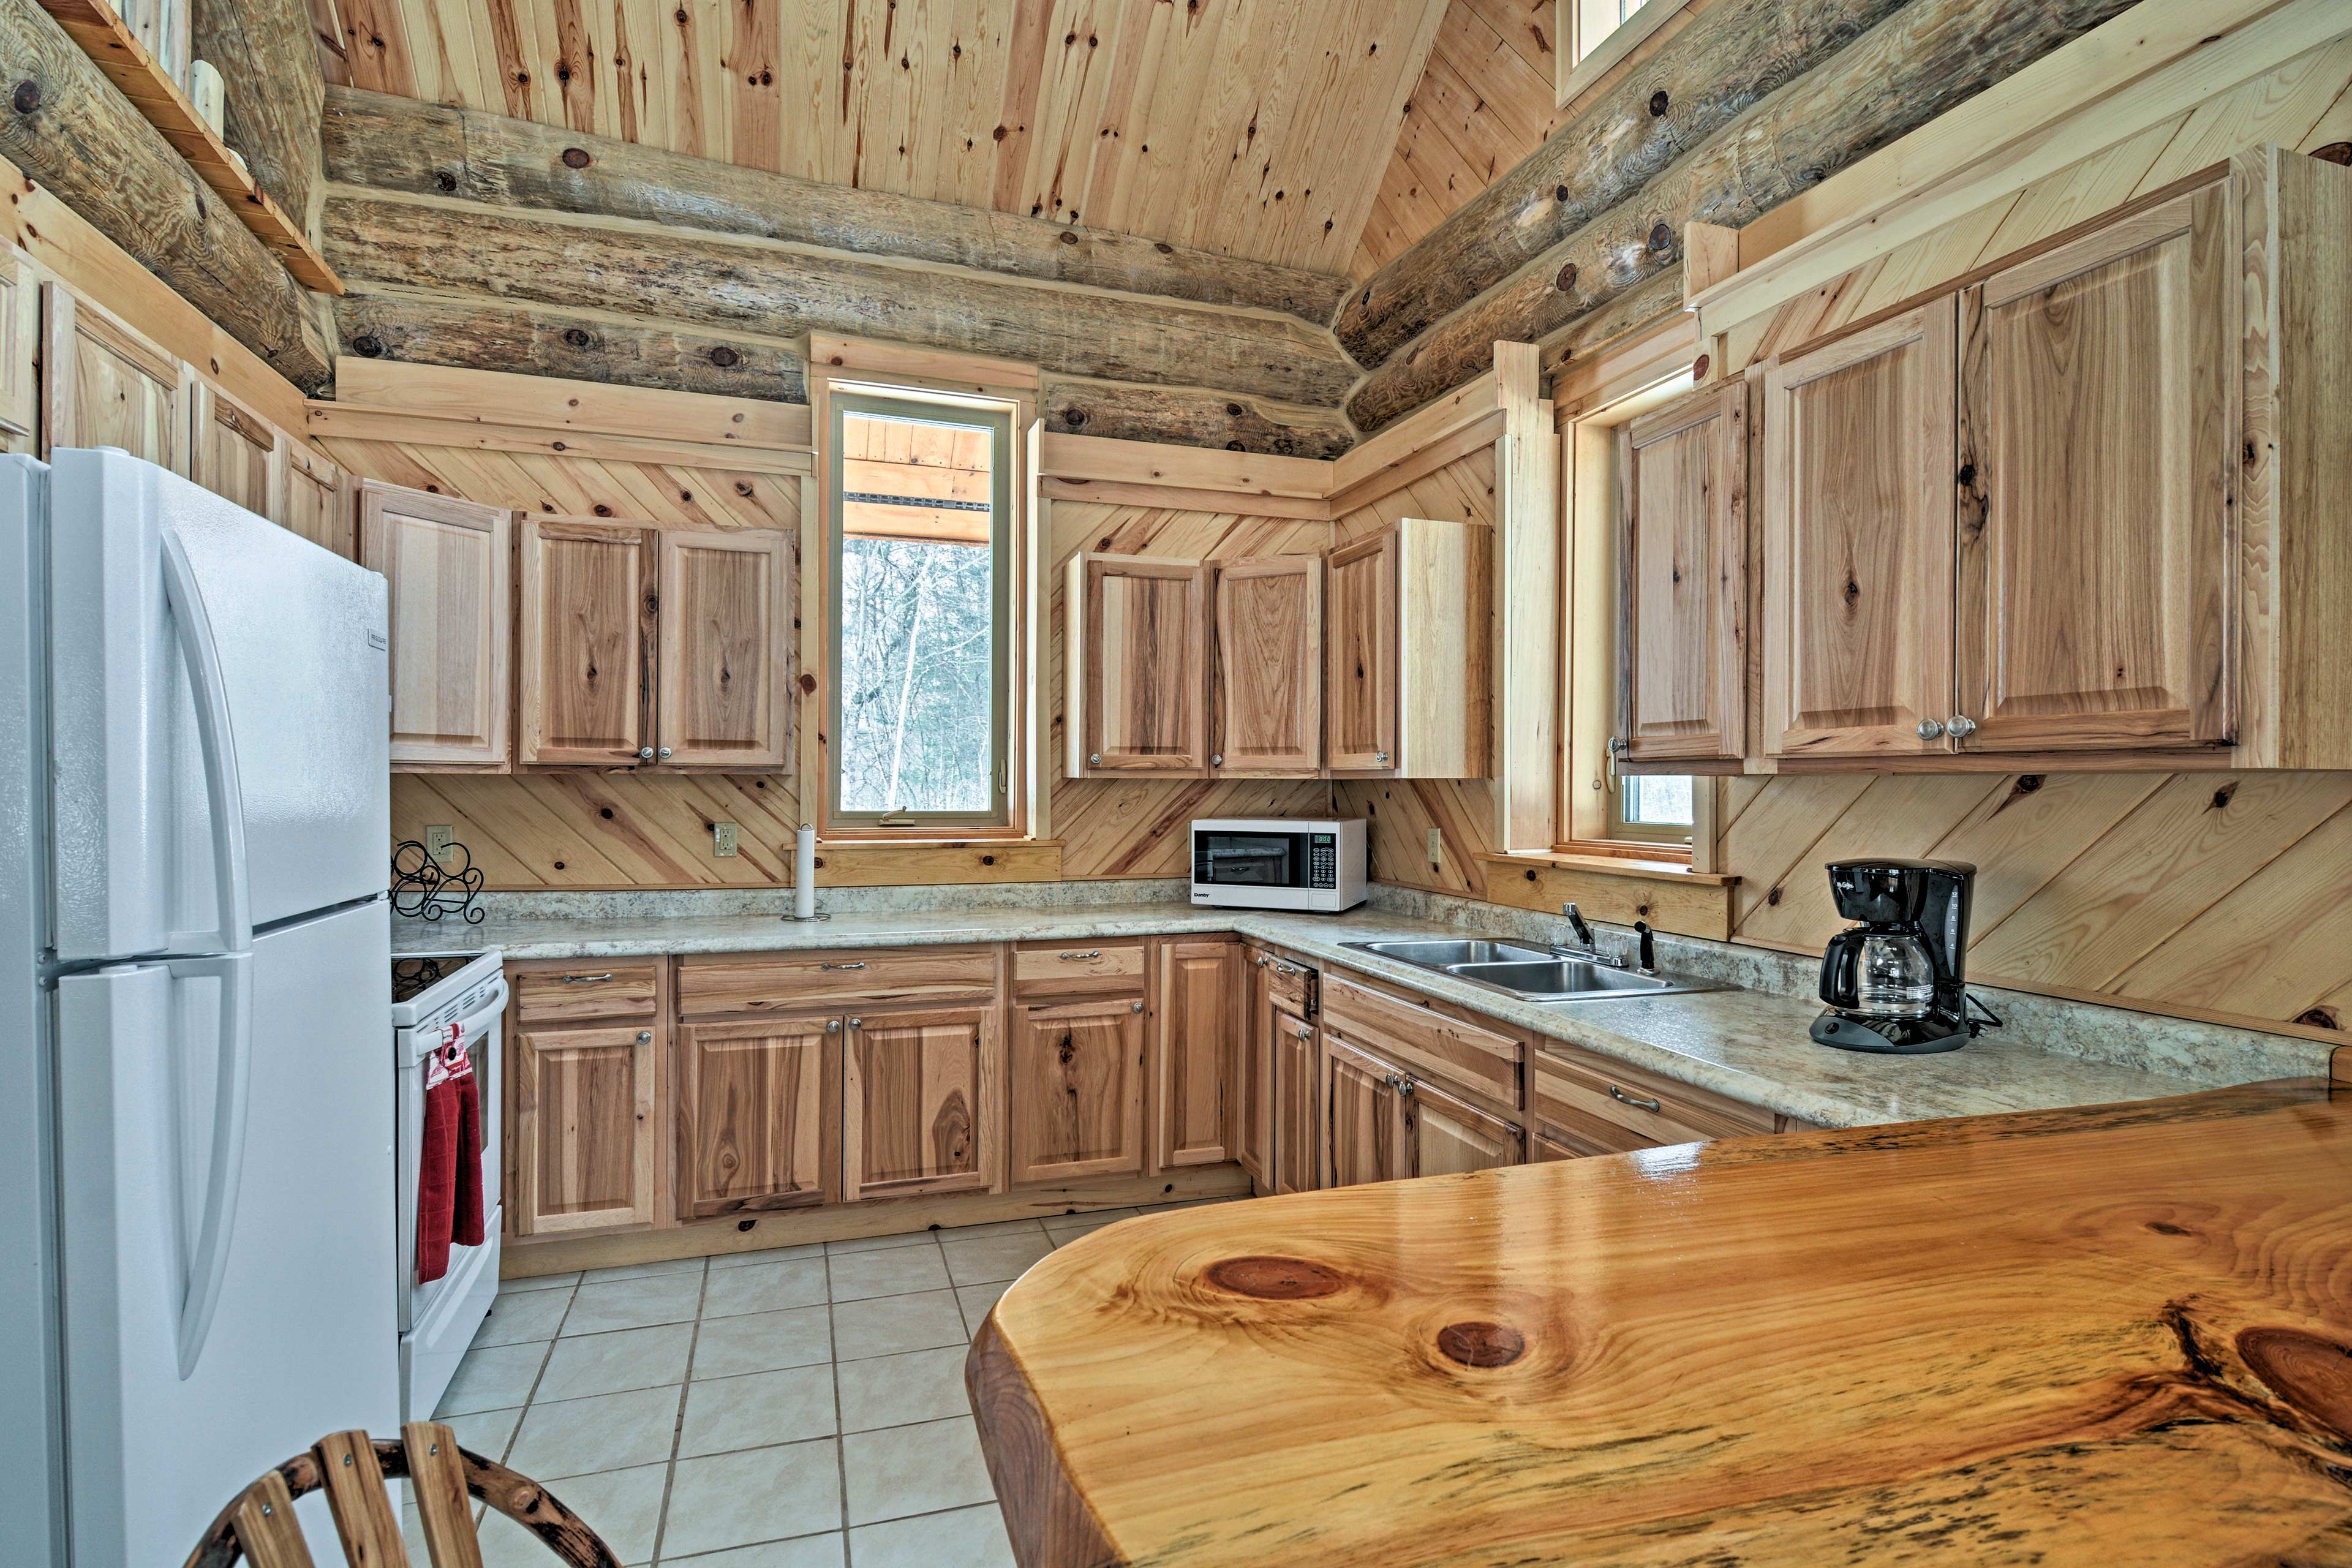 The well-equipped kitchen boasts wood cabinetry and ample counter space.